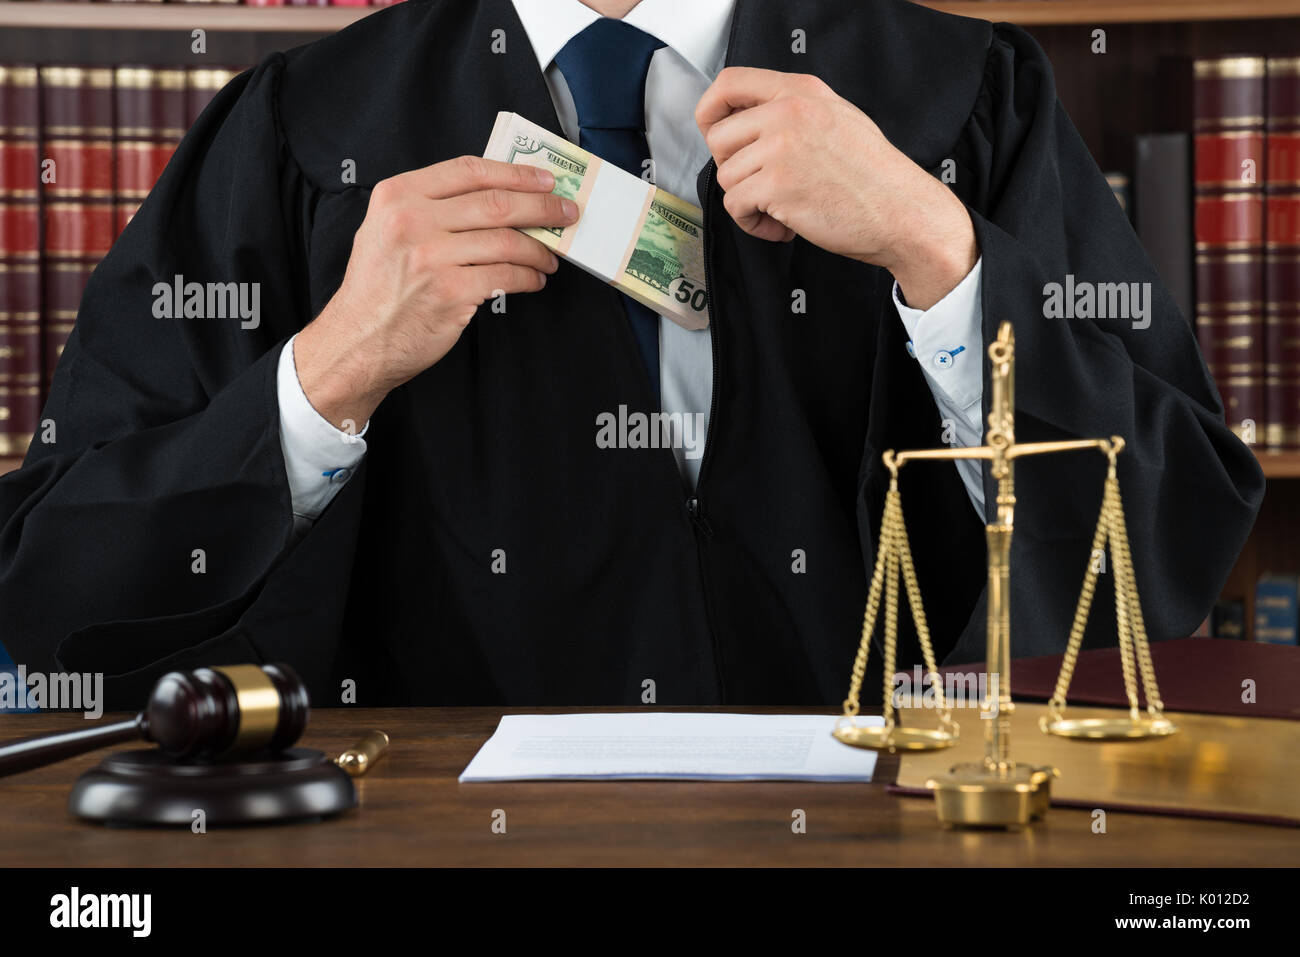 Midsection of corrupt judge putting dollar bundle in pocket at courtroom Stock Photo